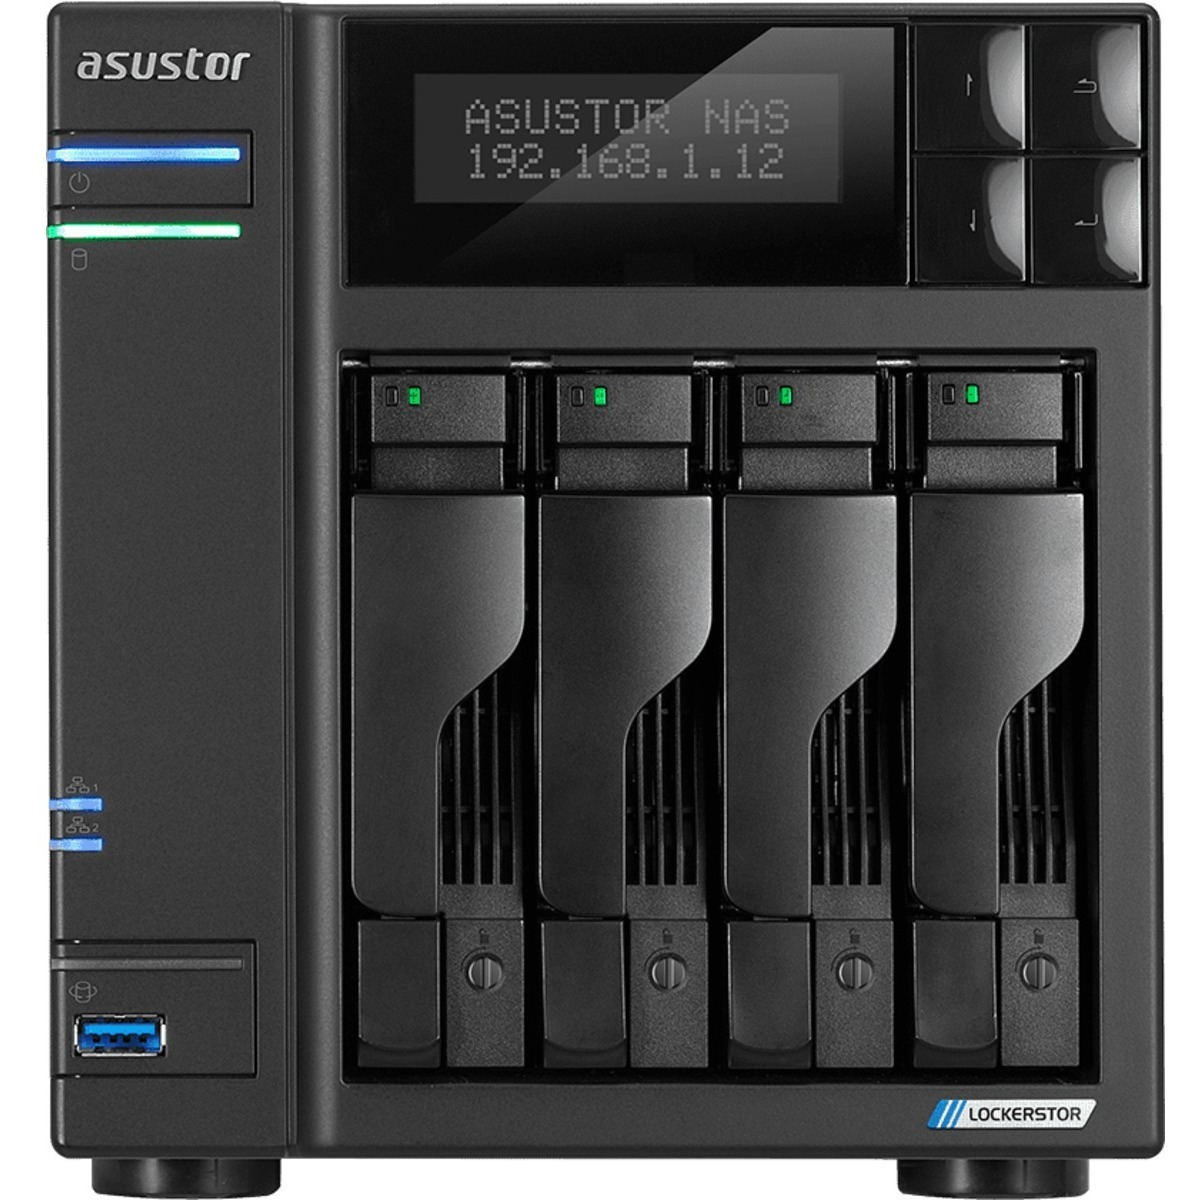 buy $1030 ASUSTOR AS6604T Lockerstor 4 2tb Desktop NAS - Network Attached Storage Device 2x1000gb Samsung 860 EVO MZ-76E1T0BW 2.5 SATA 6Gb/s SSD CONSUMER Class Drives Installed - Burn-In Tested - FREE RAM UPGRADE - nas headquarters buy network attached storage server device das new raid-5 free shipping usa black friday cyber monday week month christmas holiday sale AS6604T Lockerstor 4